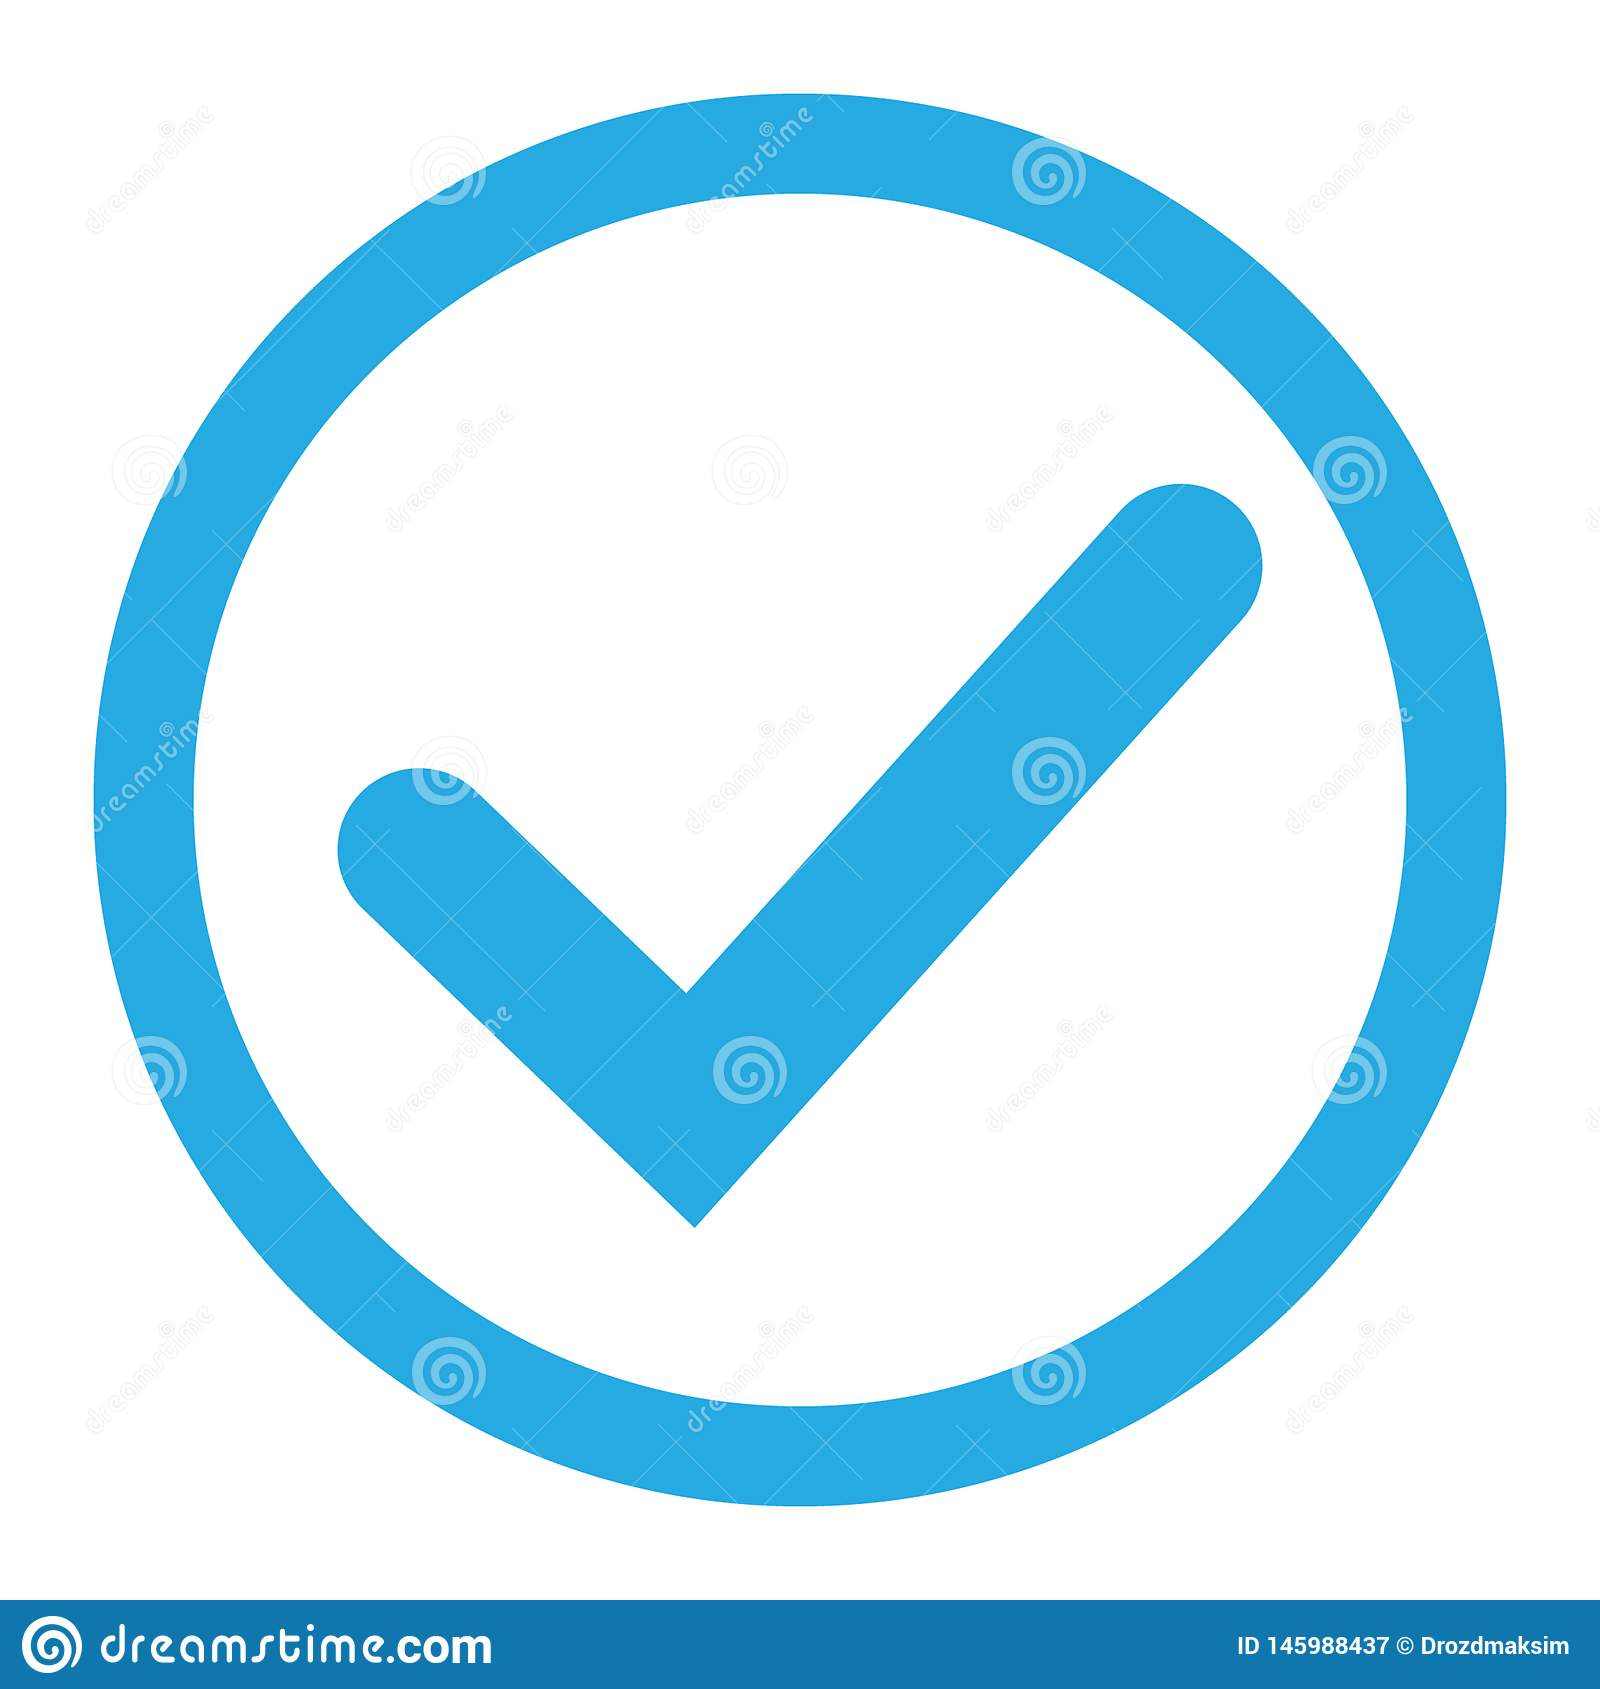 Blue tick icon vector symbol, checkmark isolated on white background, checked icon or correct choice sign, check mark or checkbox